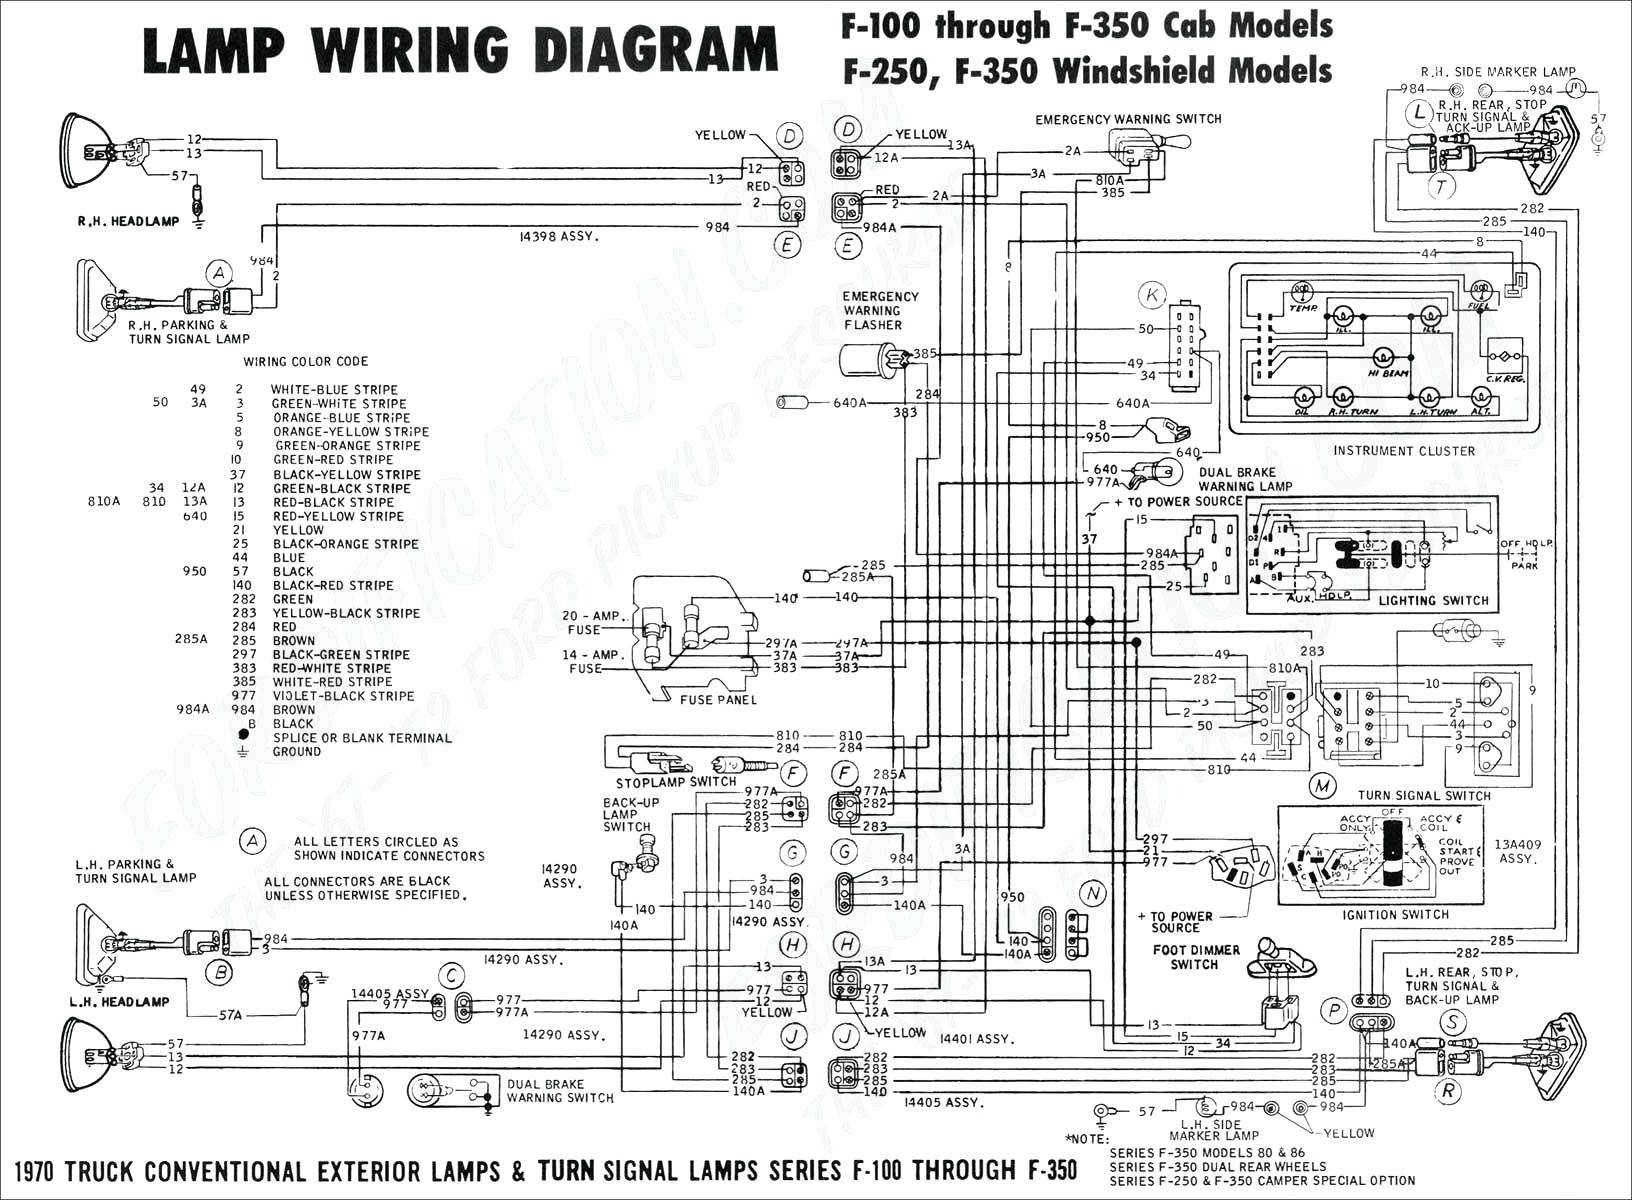 Ford trailer wiring diagram gallery wiring diagram sample ford trailer wiring diagram download semi trailer wiring diagram unique wiring diagram ford f150 trailer download wiring diagram asfbconference2016 Gallery